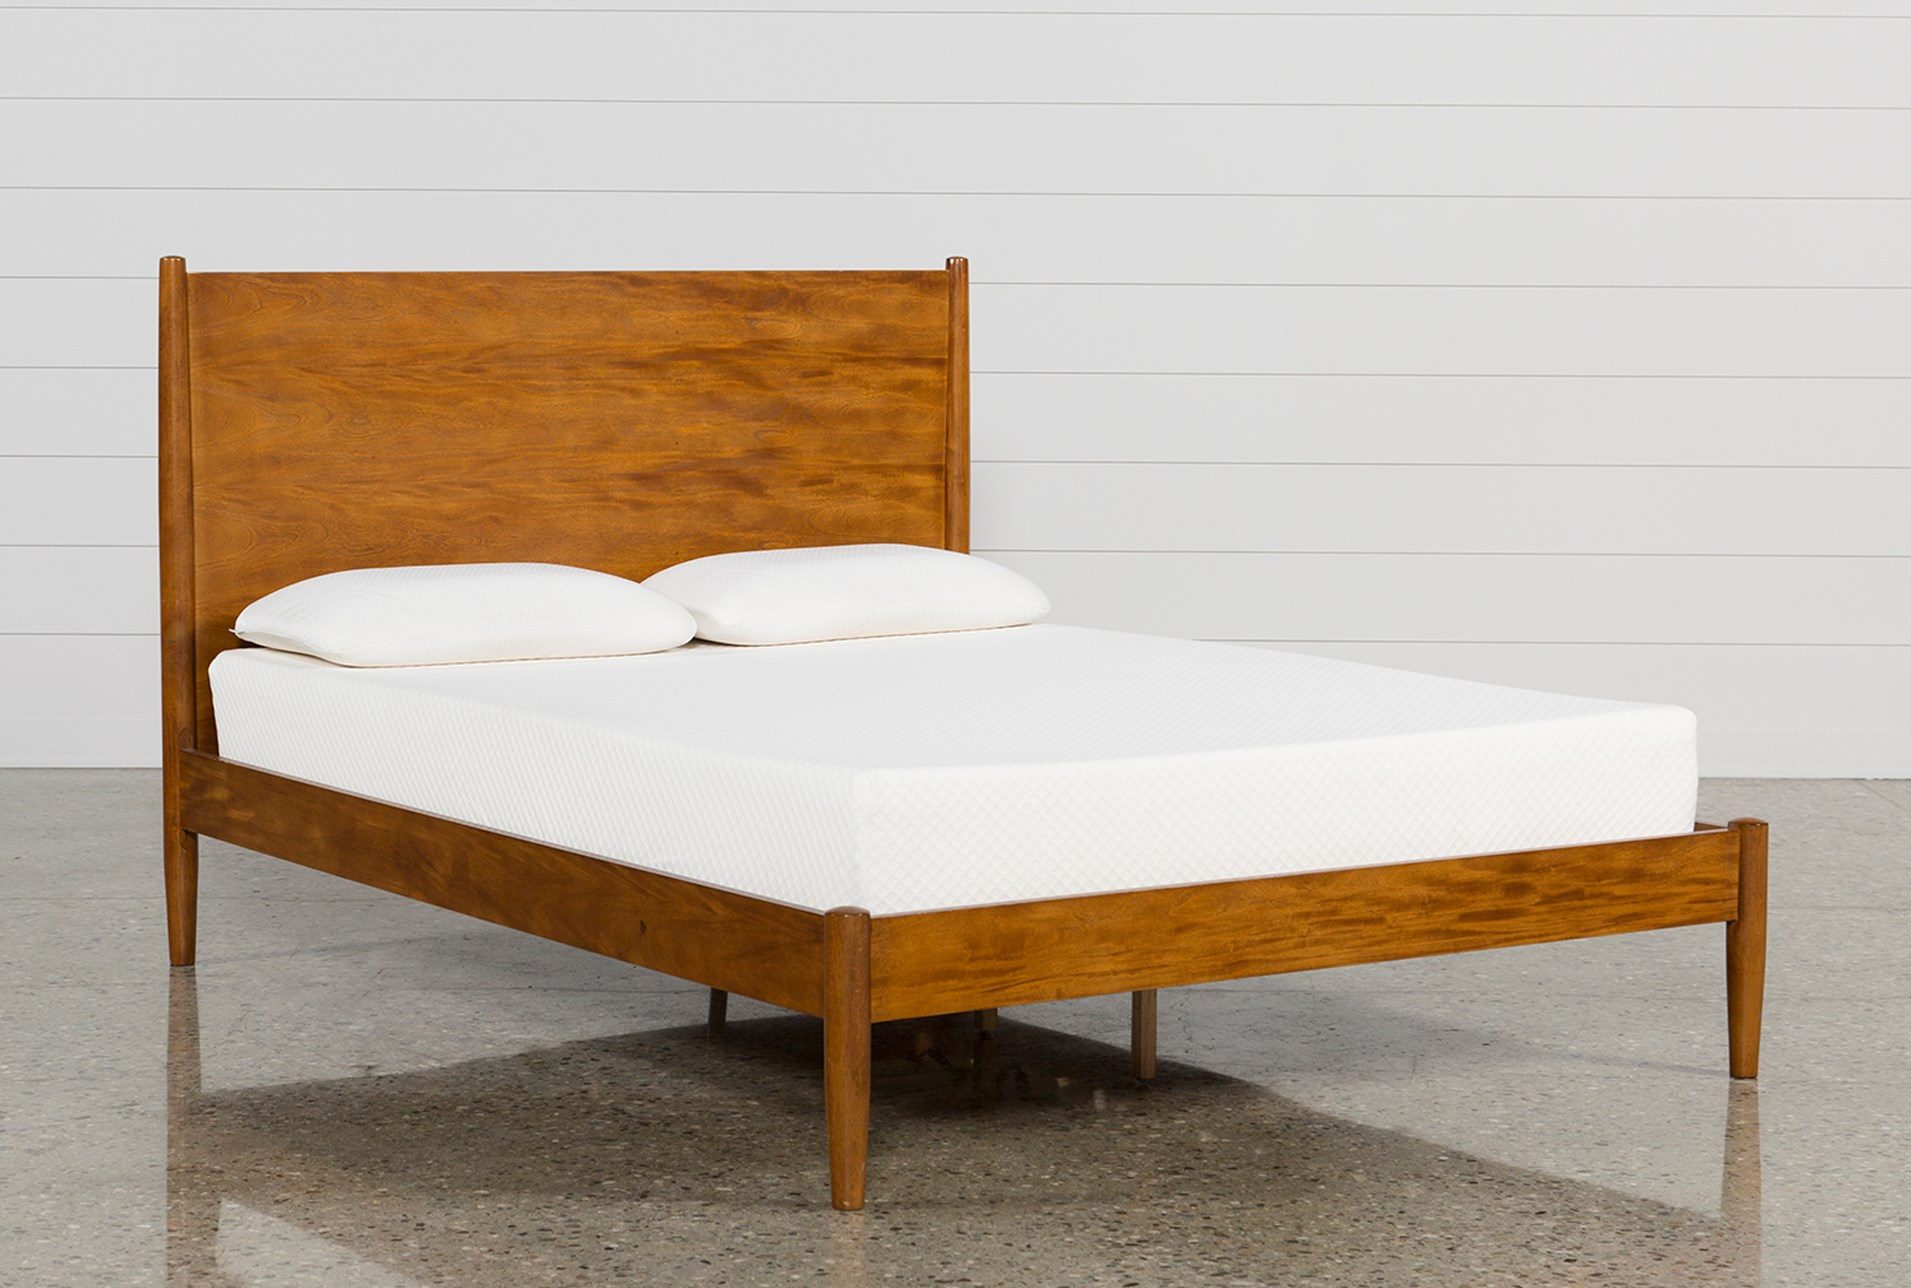 Alton Cherry Queen Platform Bed Qty 1 Has Been Successfully Added To Your Cart